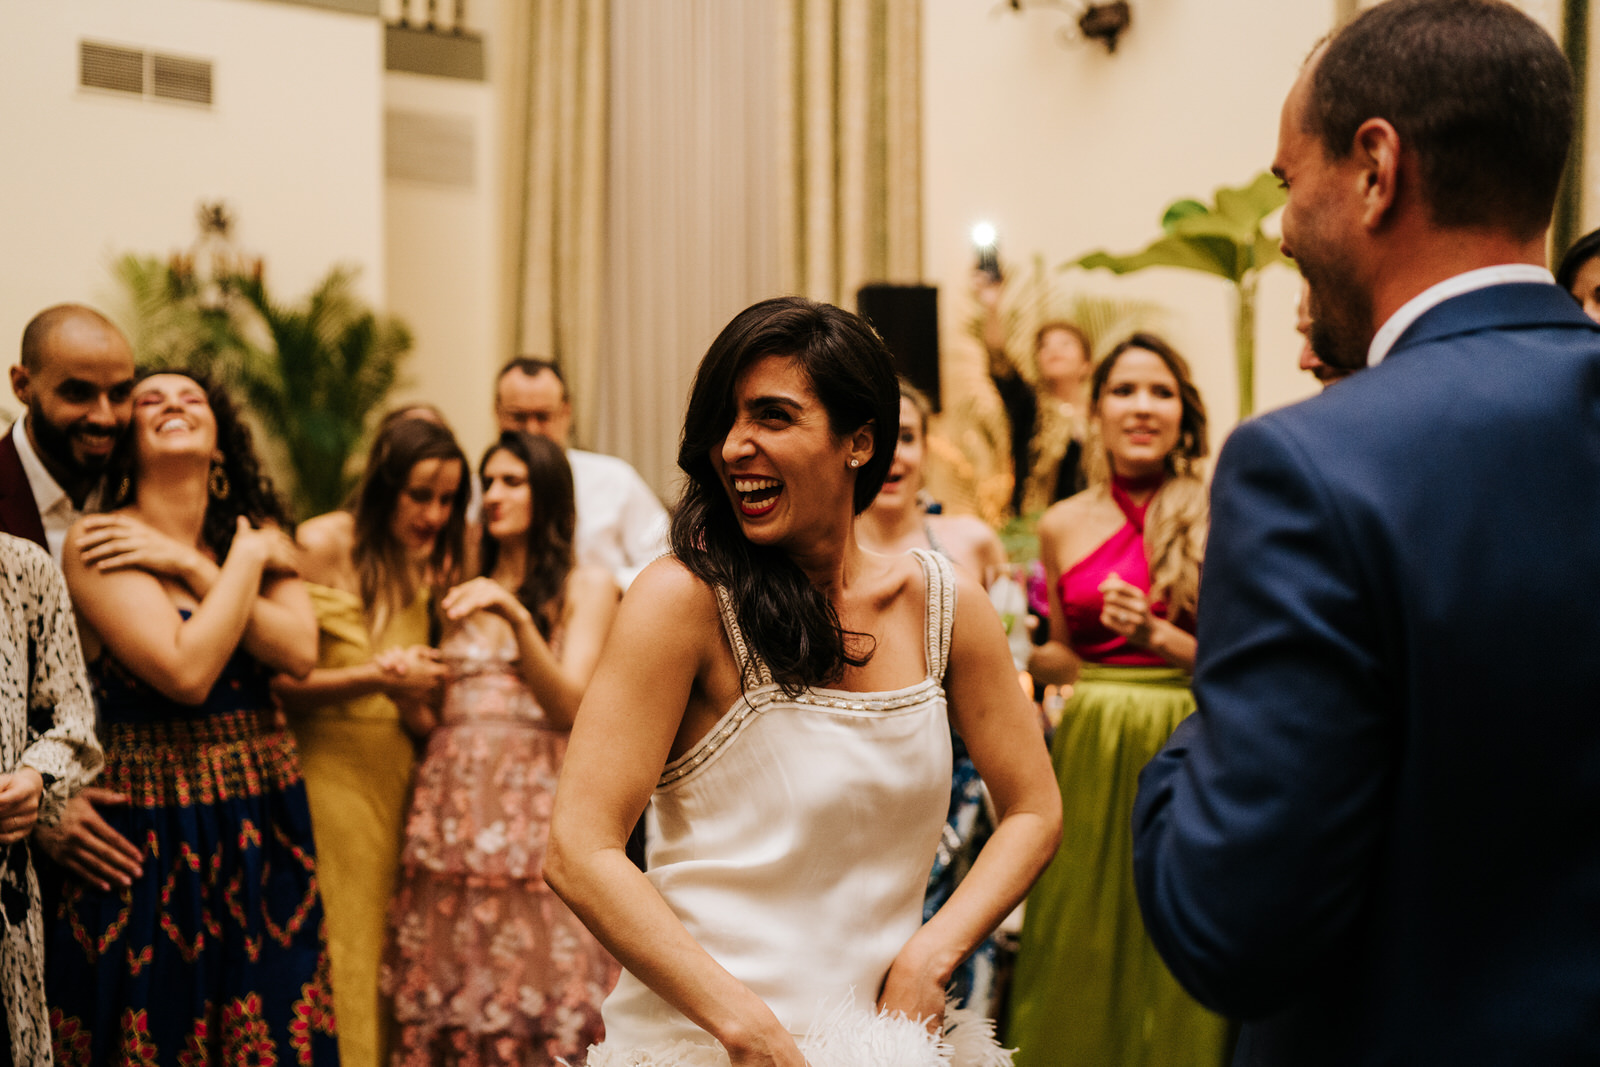 Bride smiles and cheers as she dances on the dancefloor